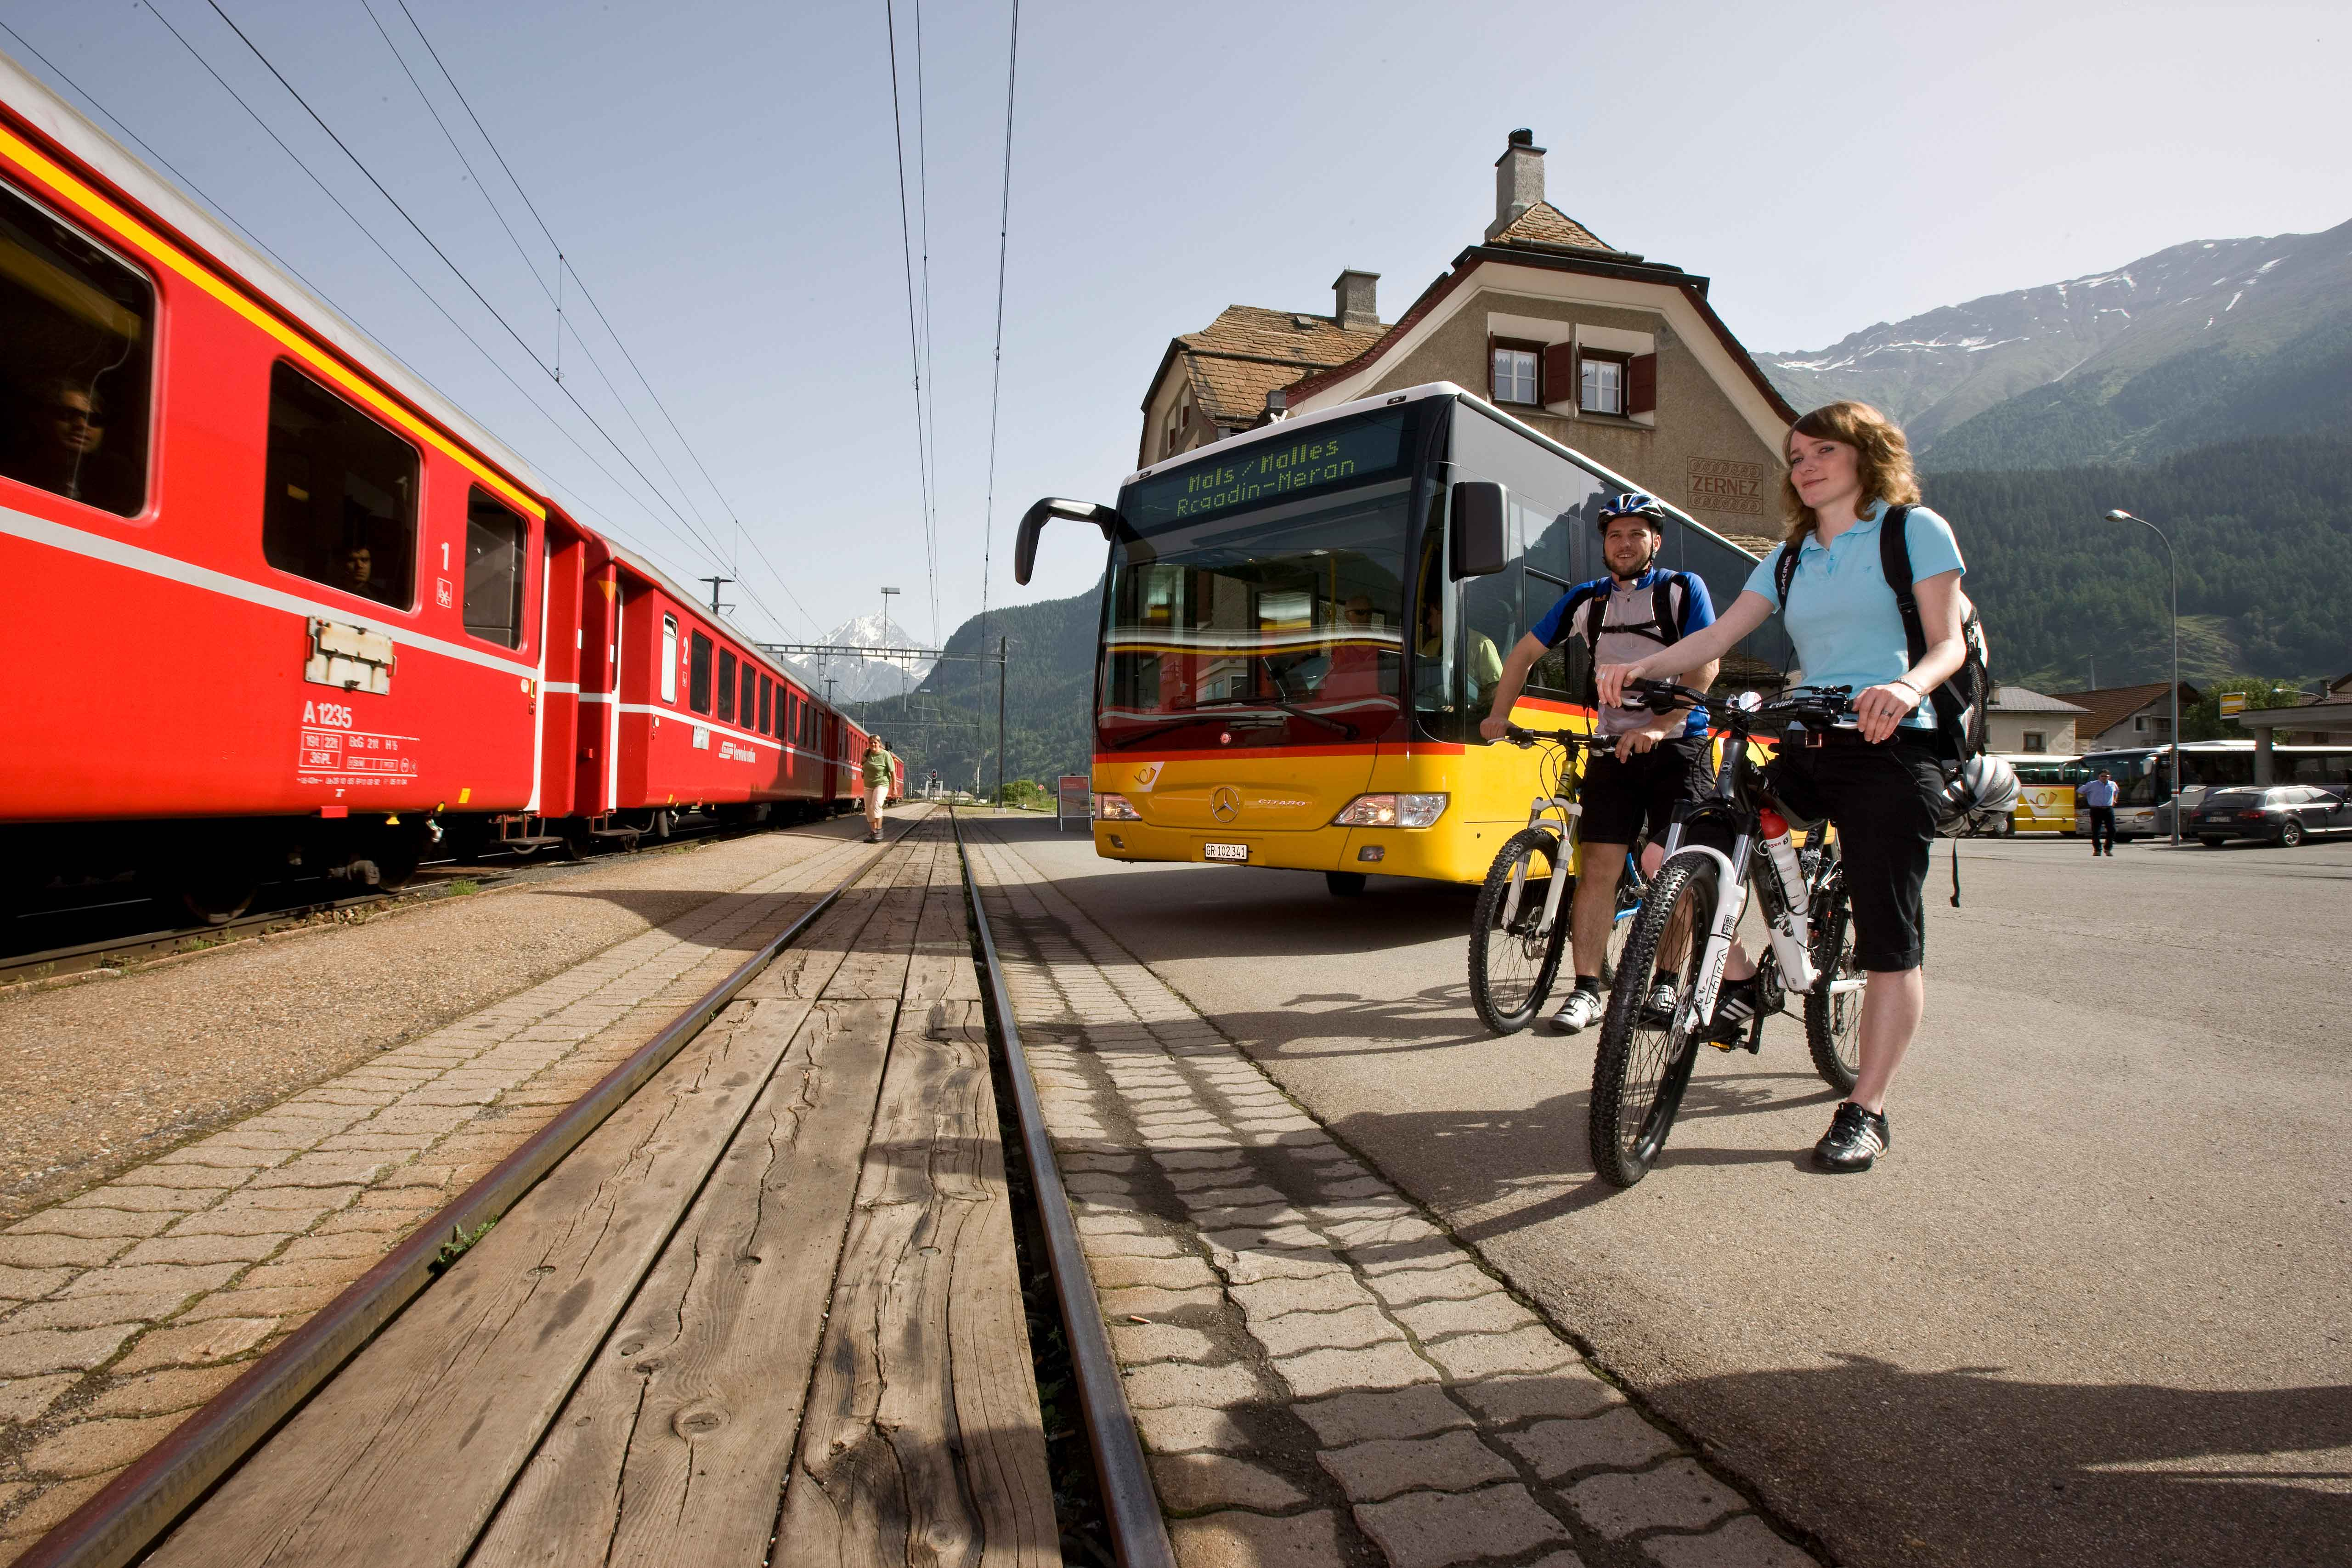 Mountainbike-Transport: Postauto Graubünden